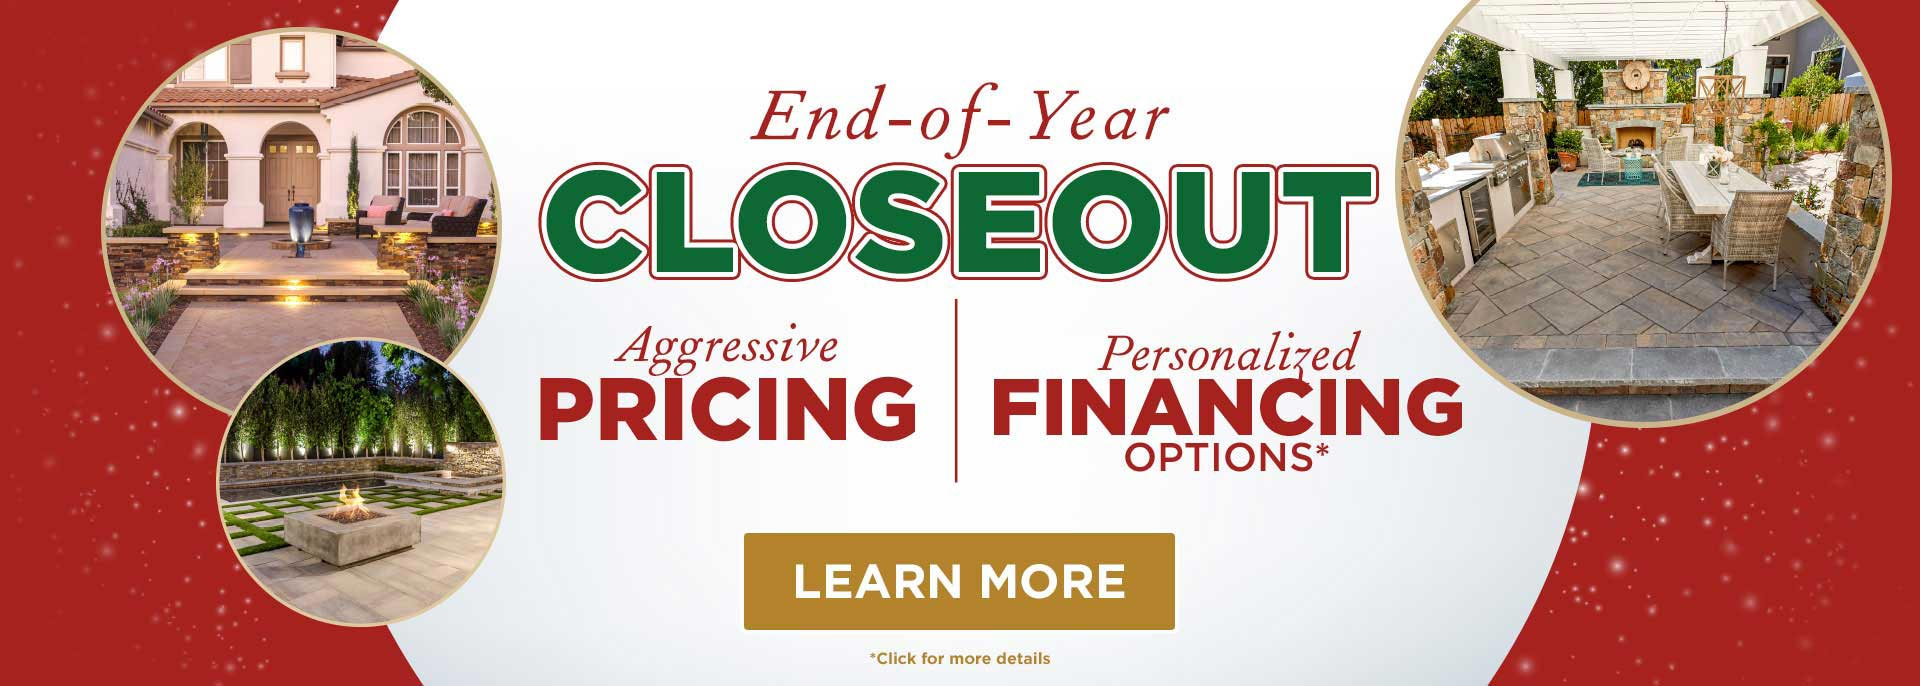 End of Year Closeout Deal and Special Offers